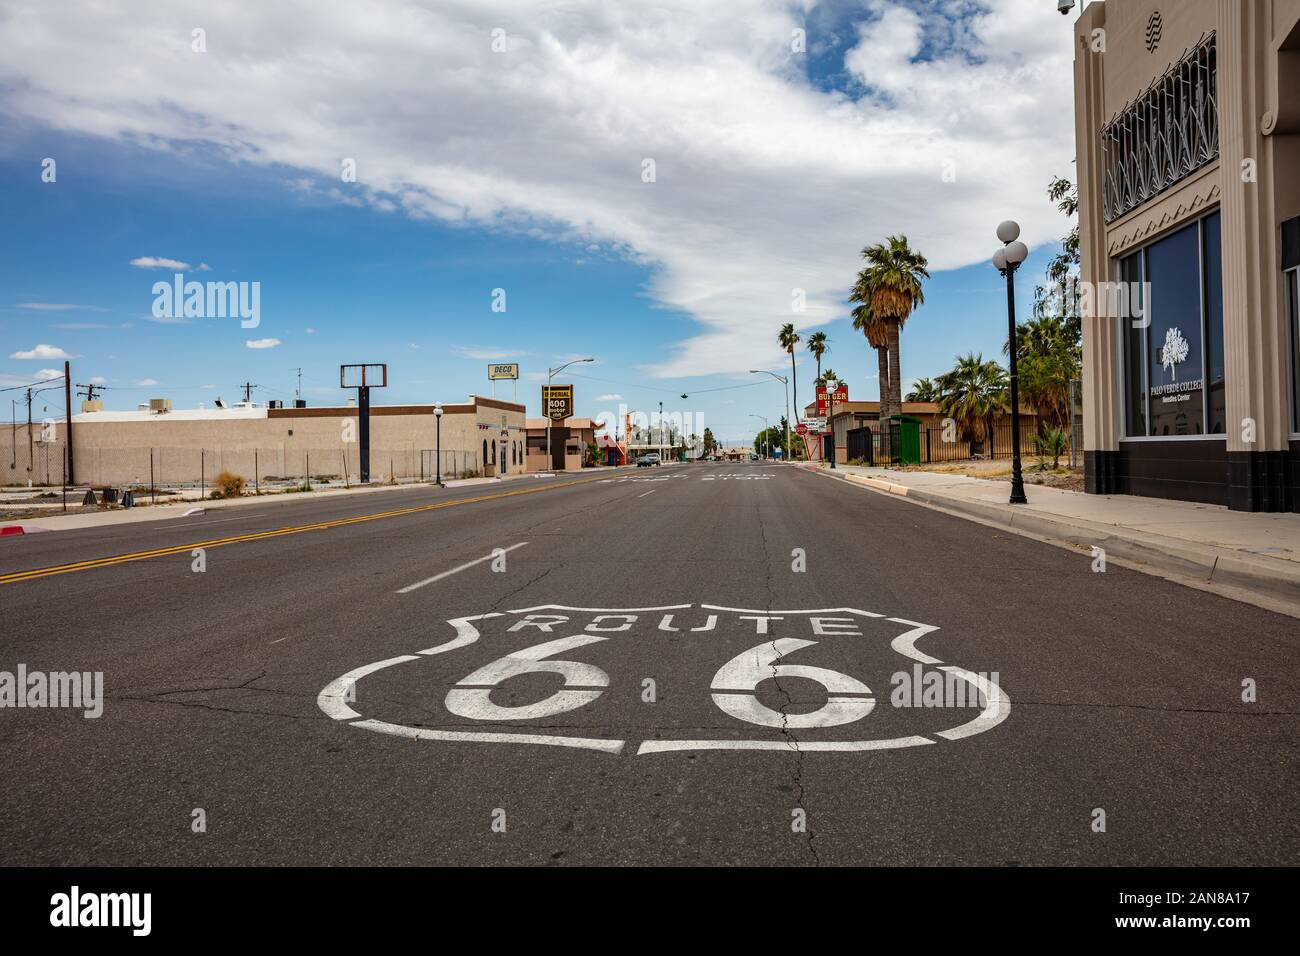 Needles, California, USA. May 26, 2019. Route 66 historic mother road sign on the asphalt street, empty road, cloudy blue sky background. Stock Photo